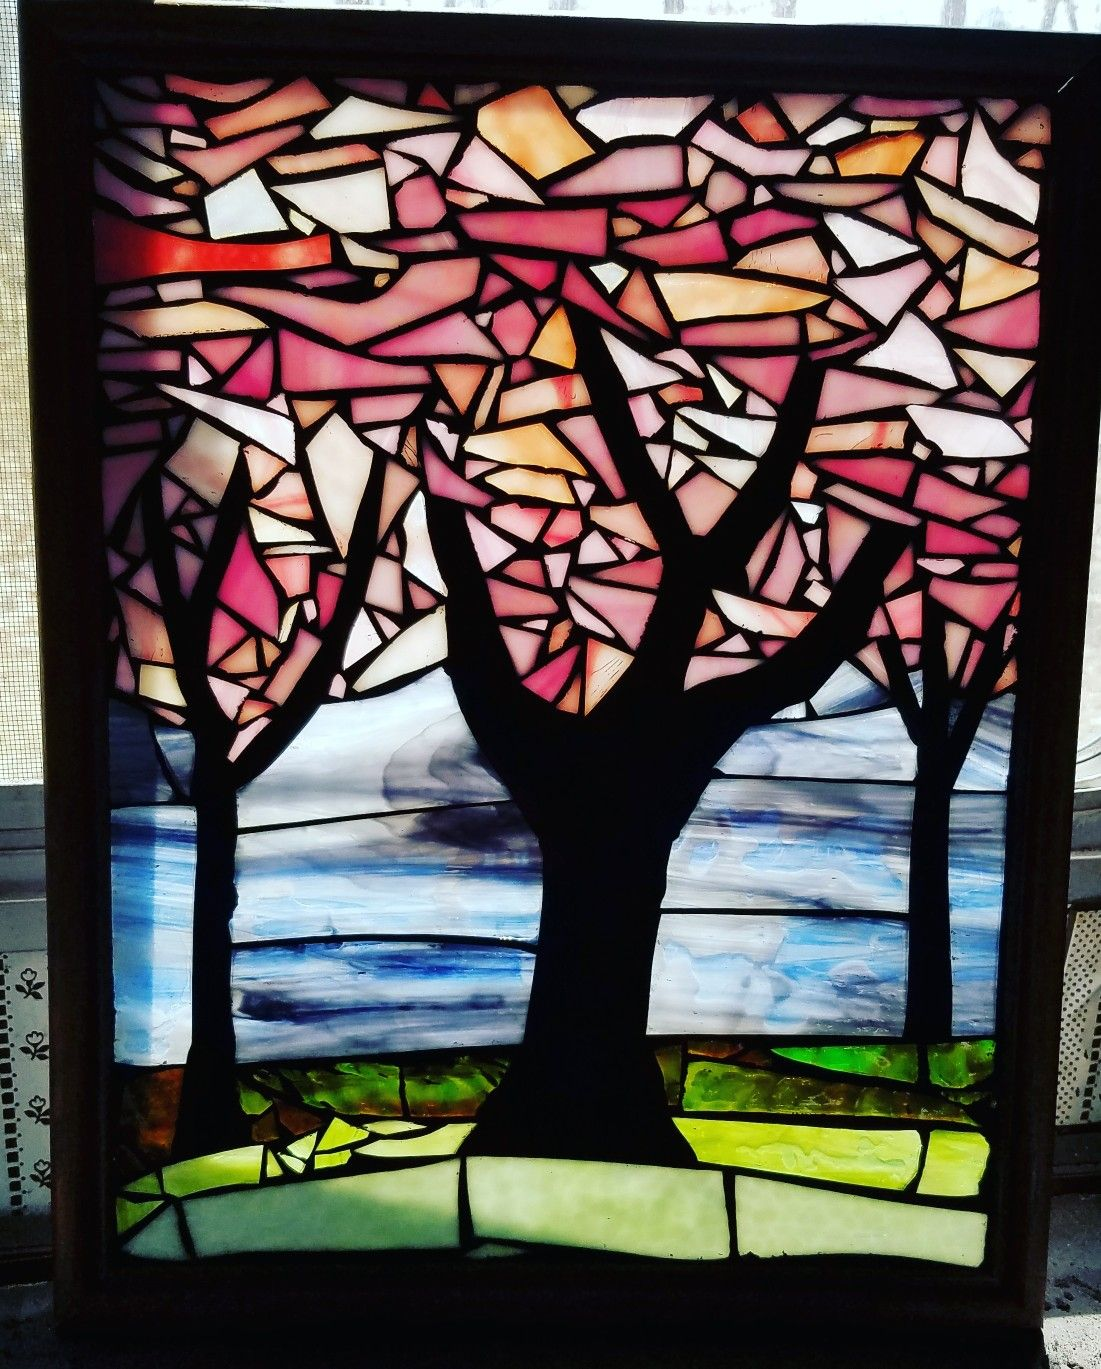 Stained Glass Mosaic Cherry Blossom Panel By Chanda Froehle More Of My Work Can Be Found At Www Groovysquidglass Mosaic Glass Stained Glass Art Stained Glass